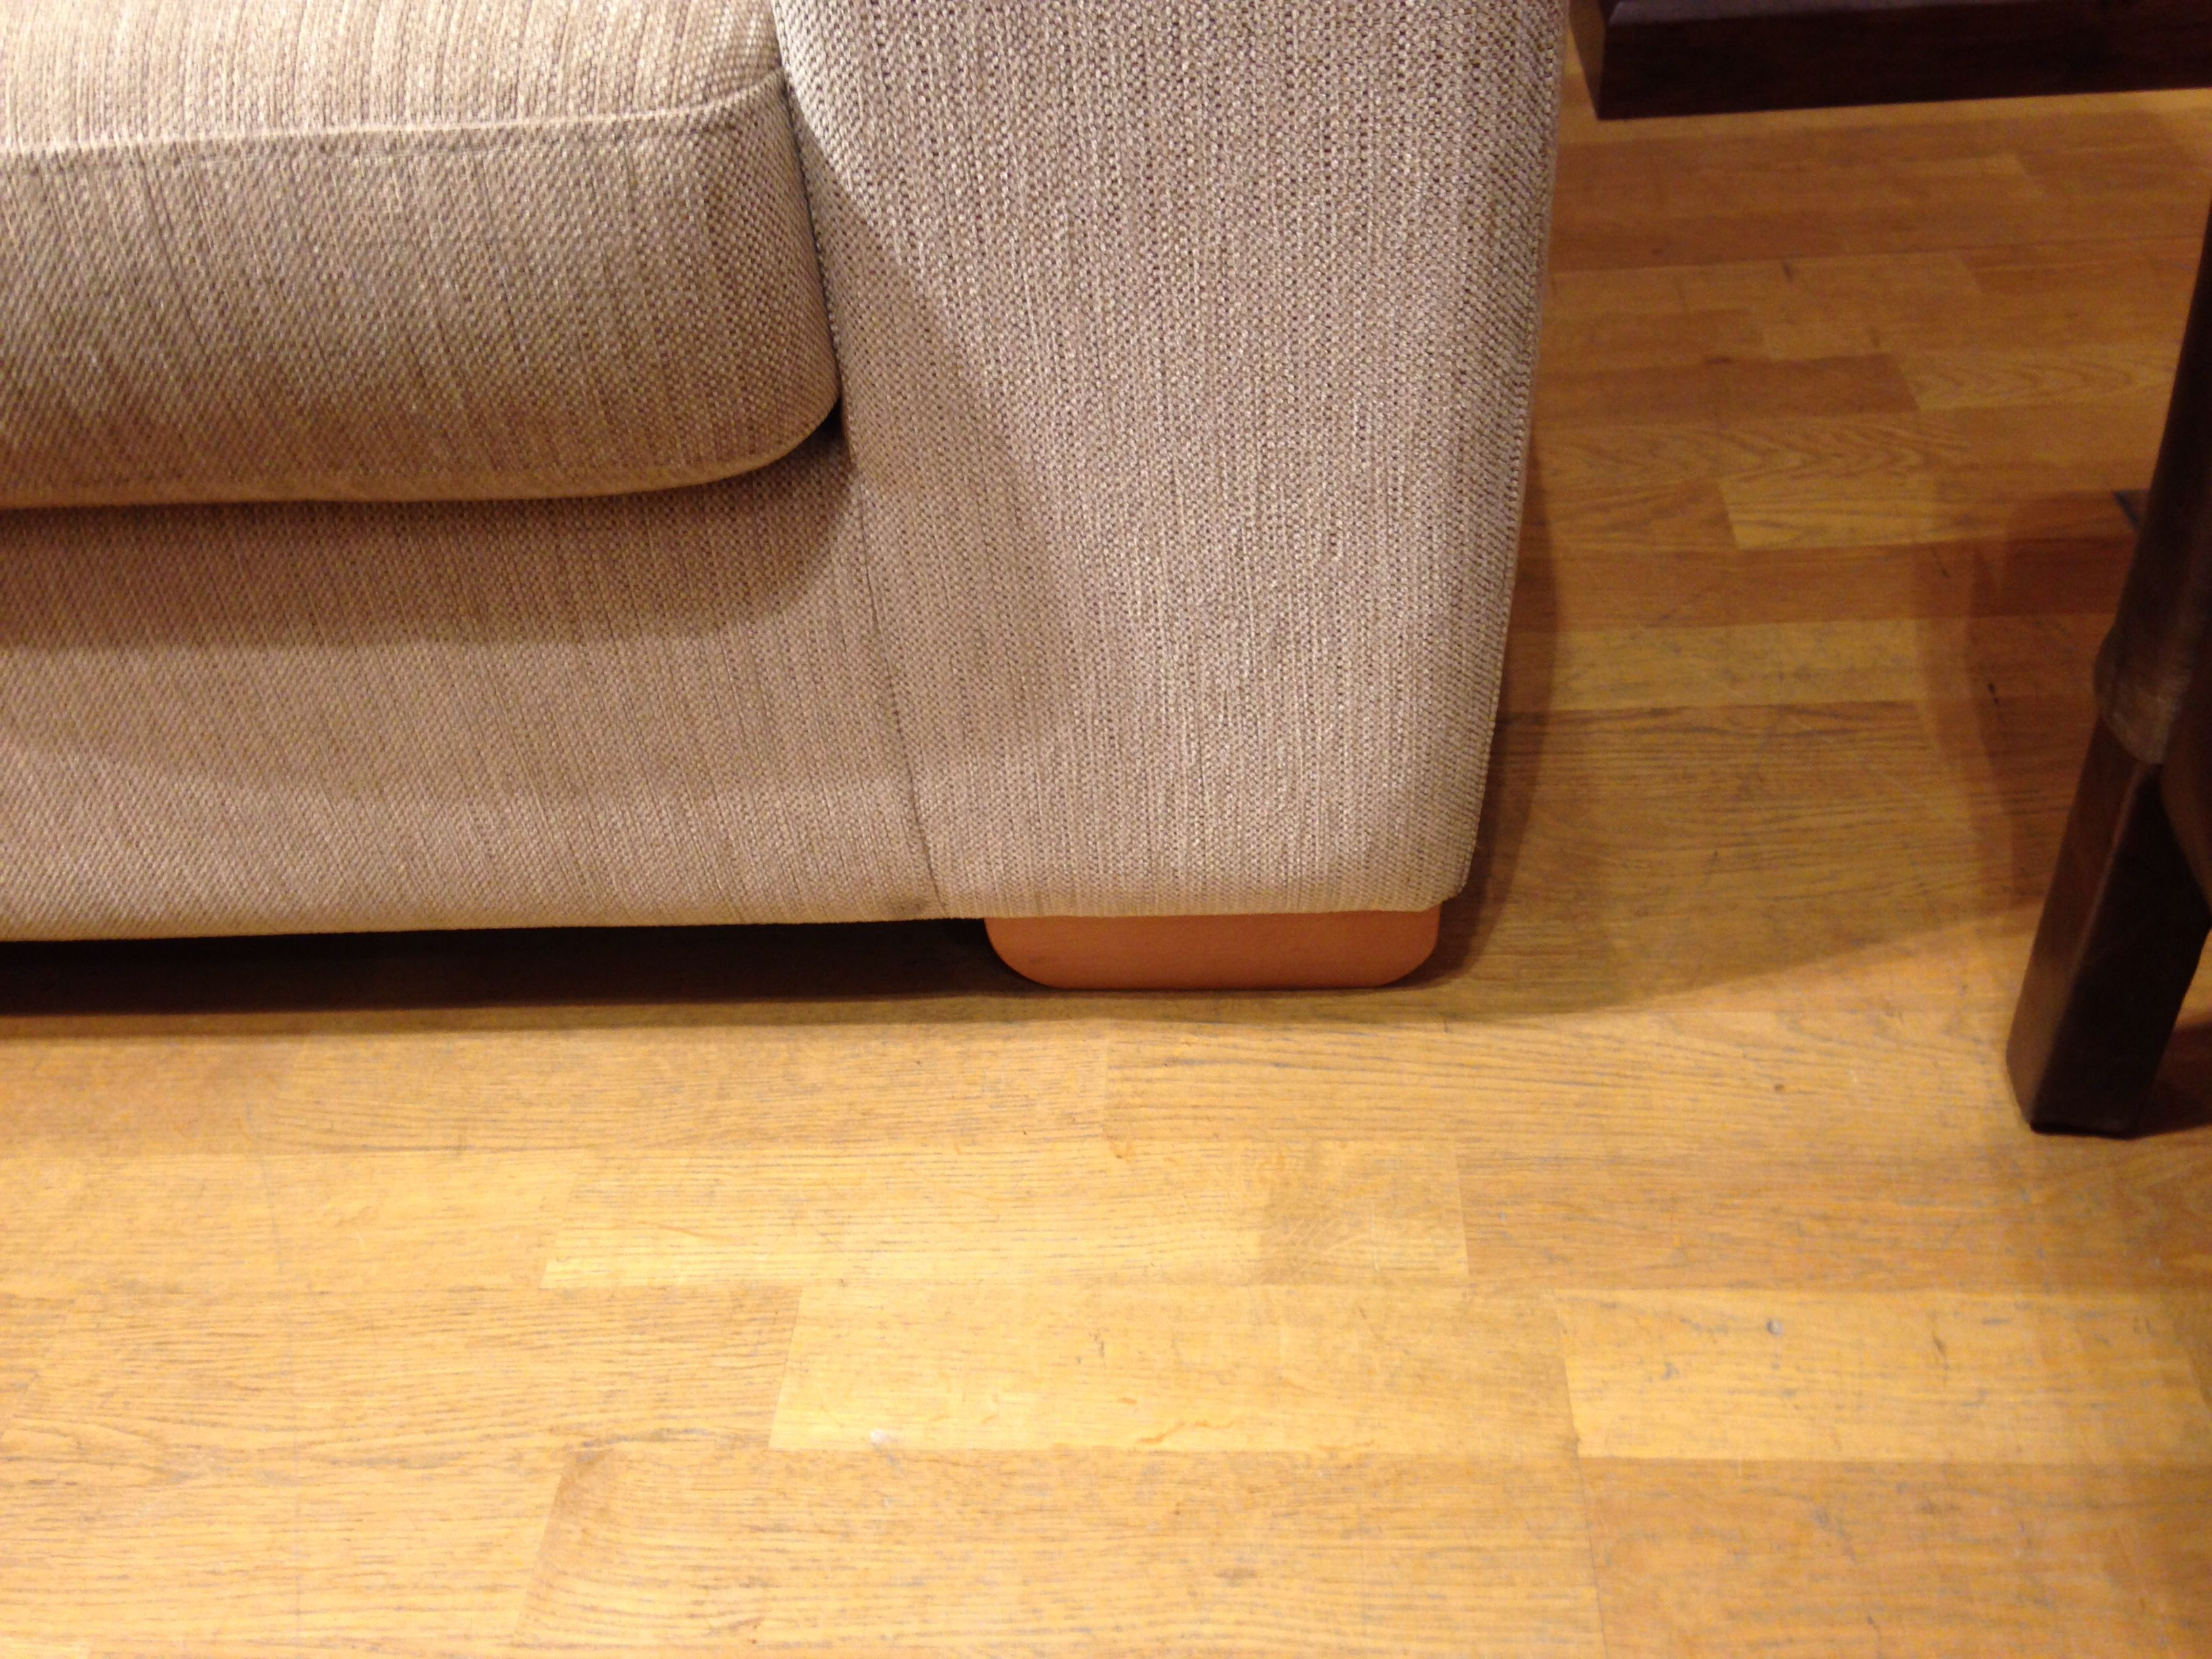 The feet on the Felix sofa chaise that S likes